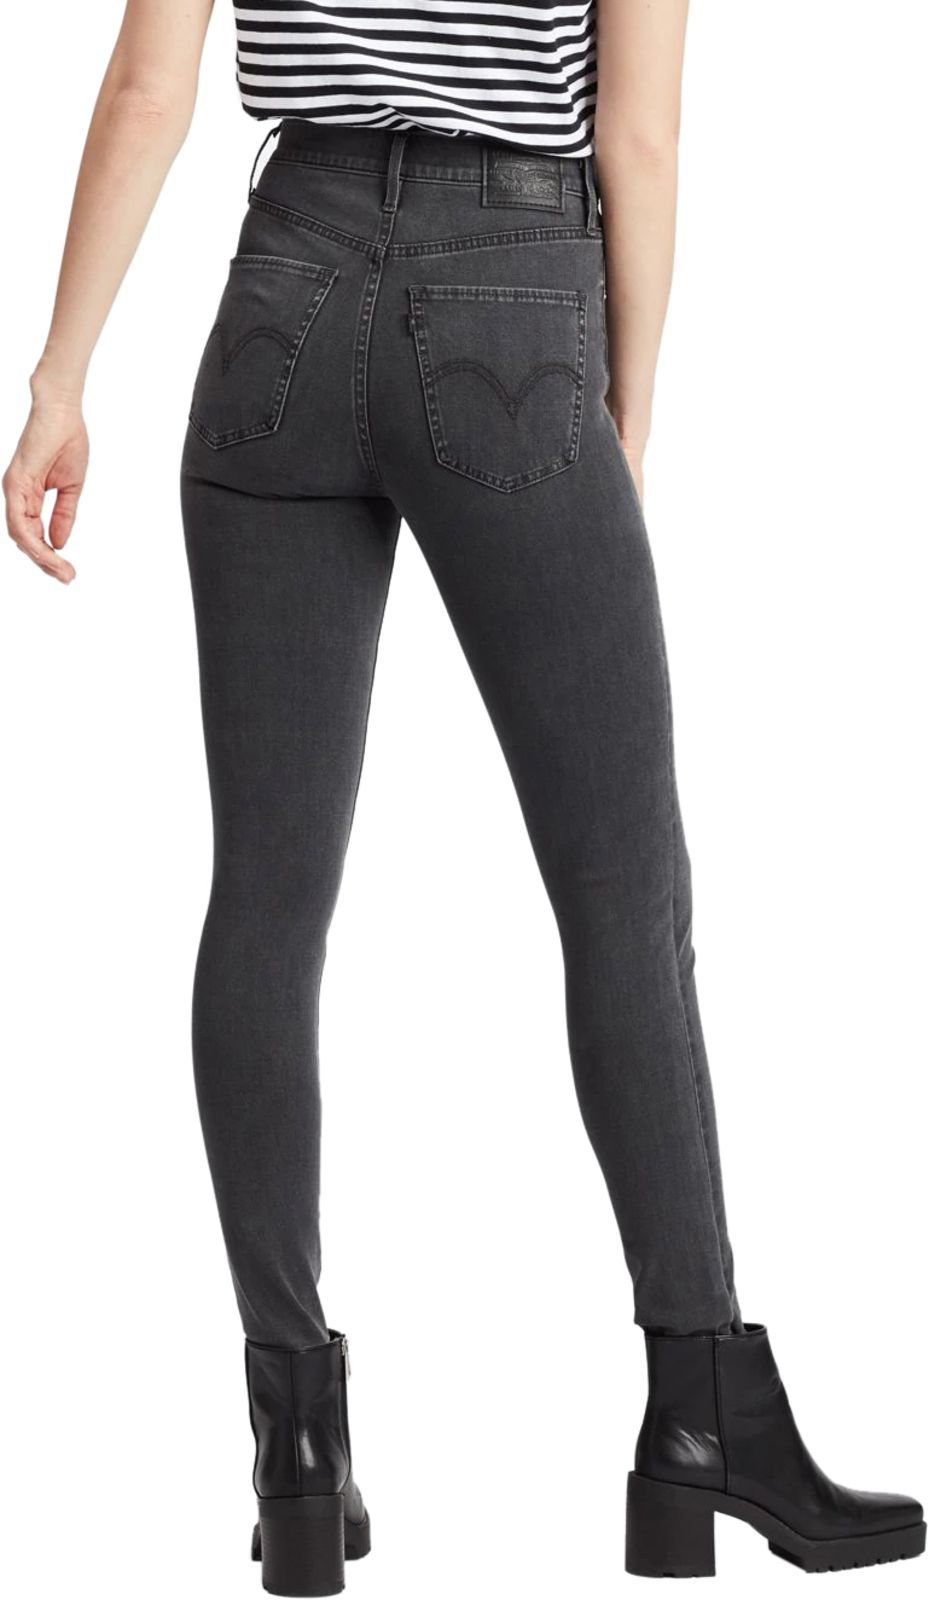 Levi's Mile High Super Skinny Denim Jeans Charcoal